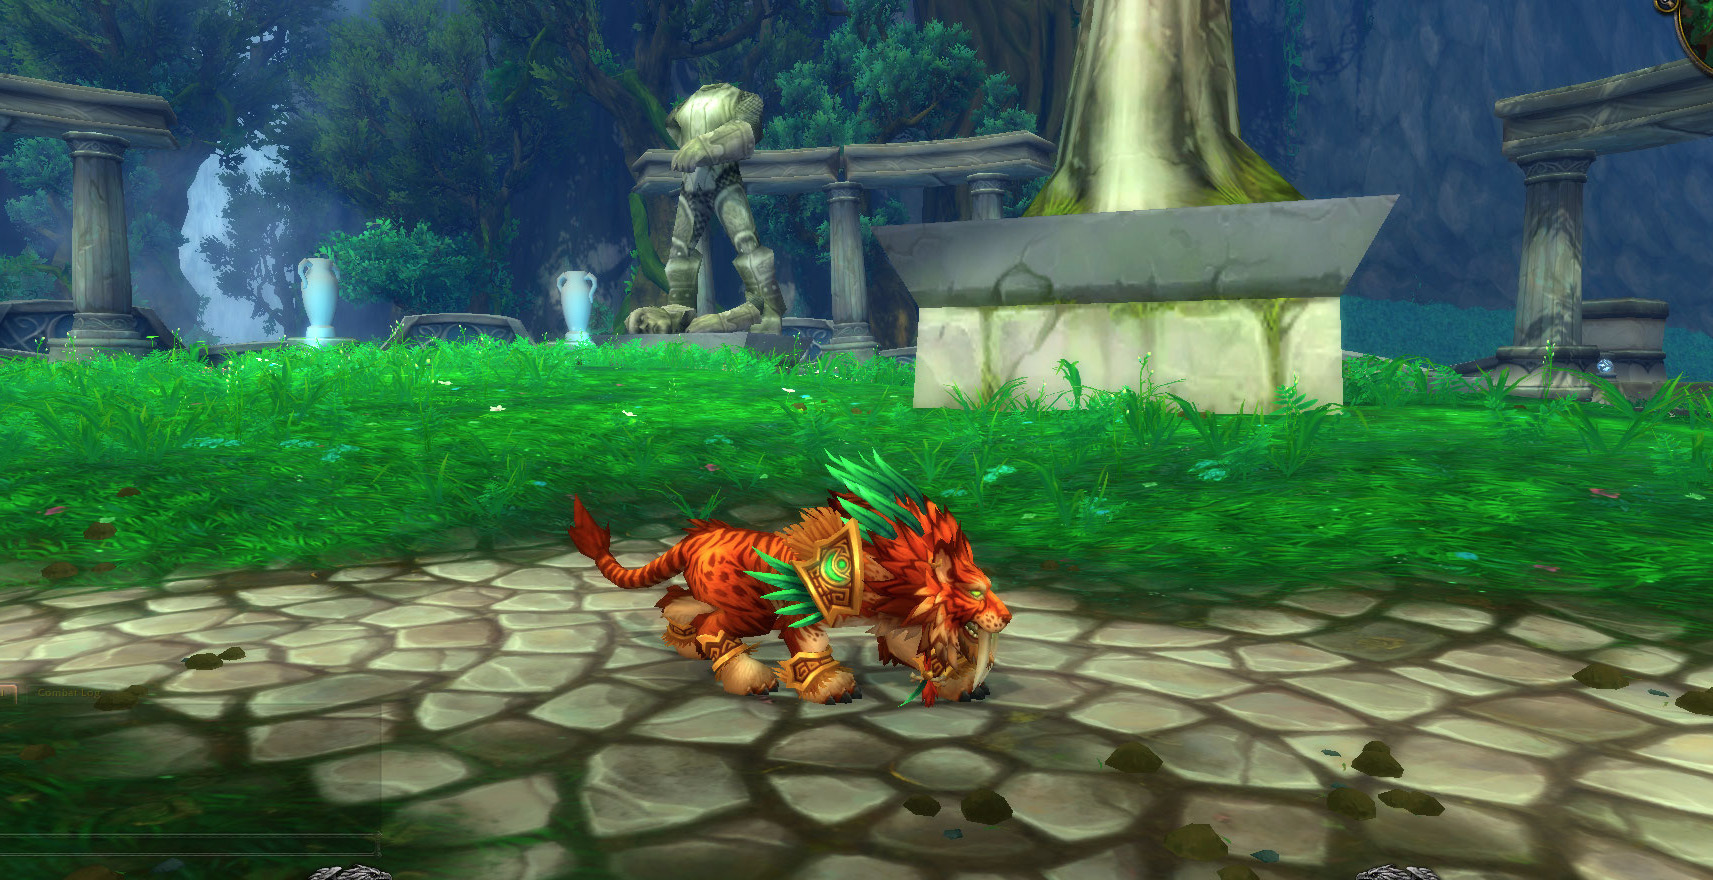 World of Warcraft: Feral druids are receiving some hotfix buffs in the next 48 hours